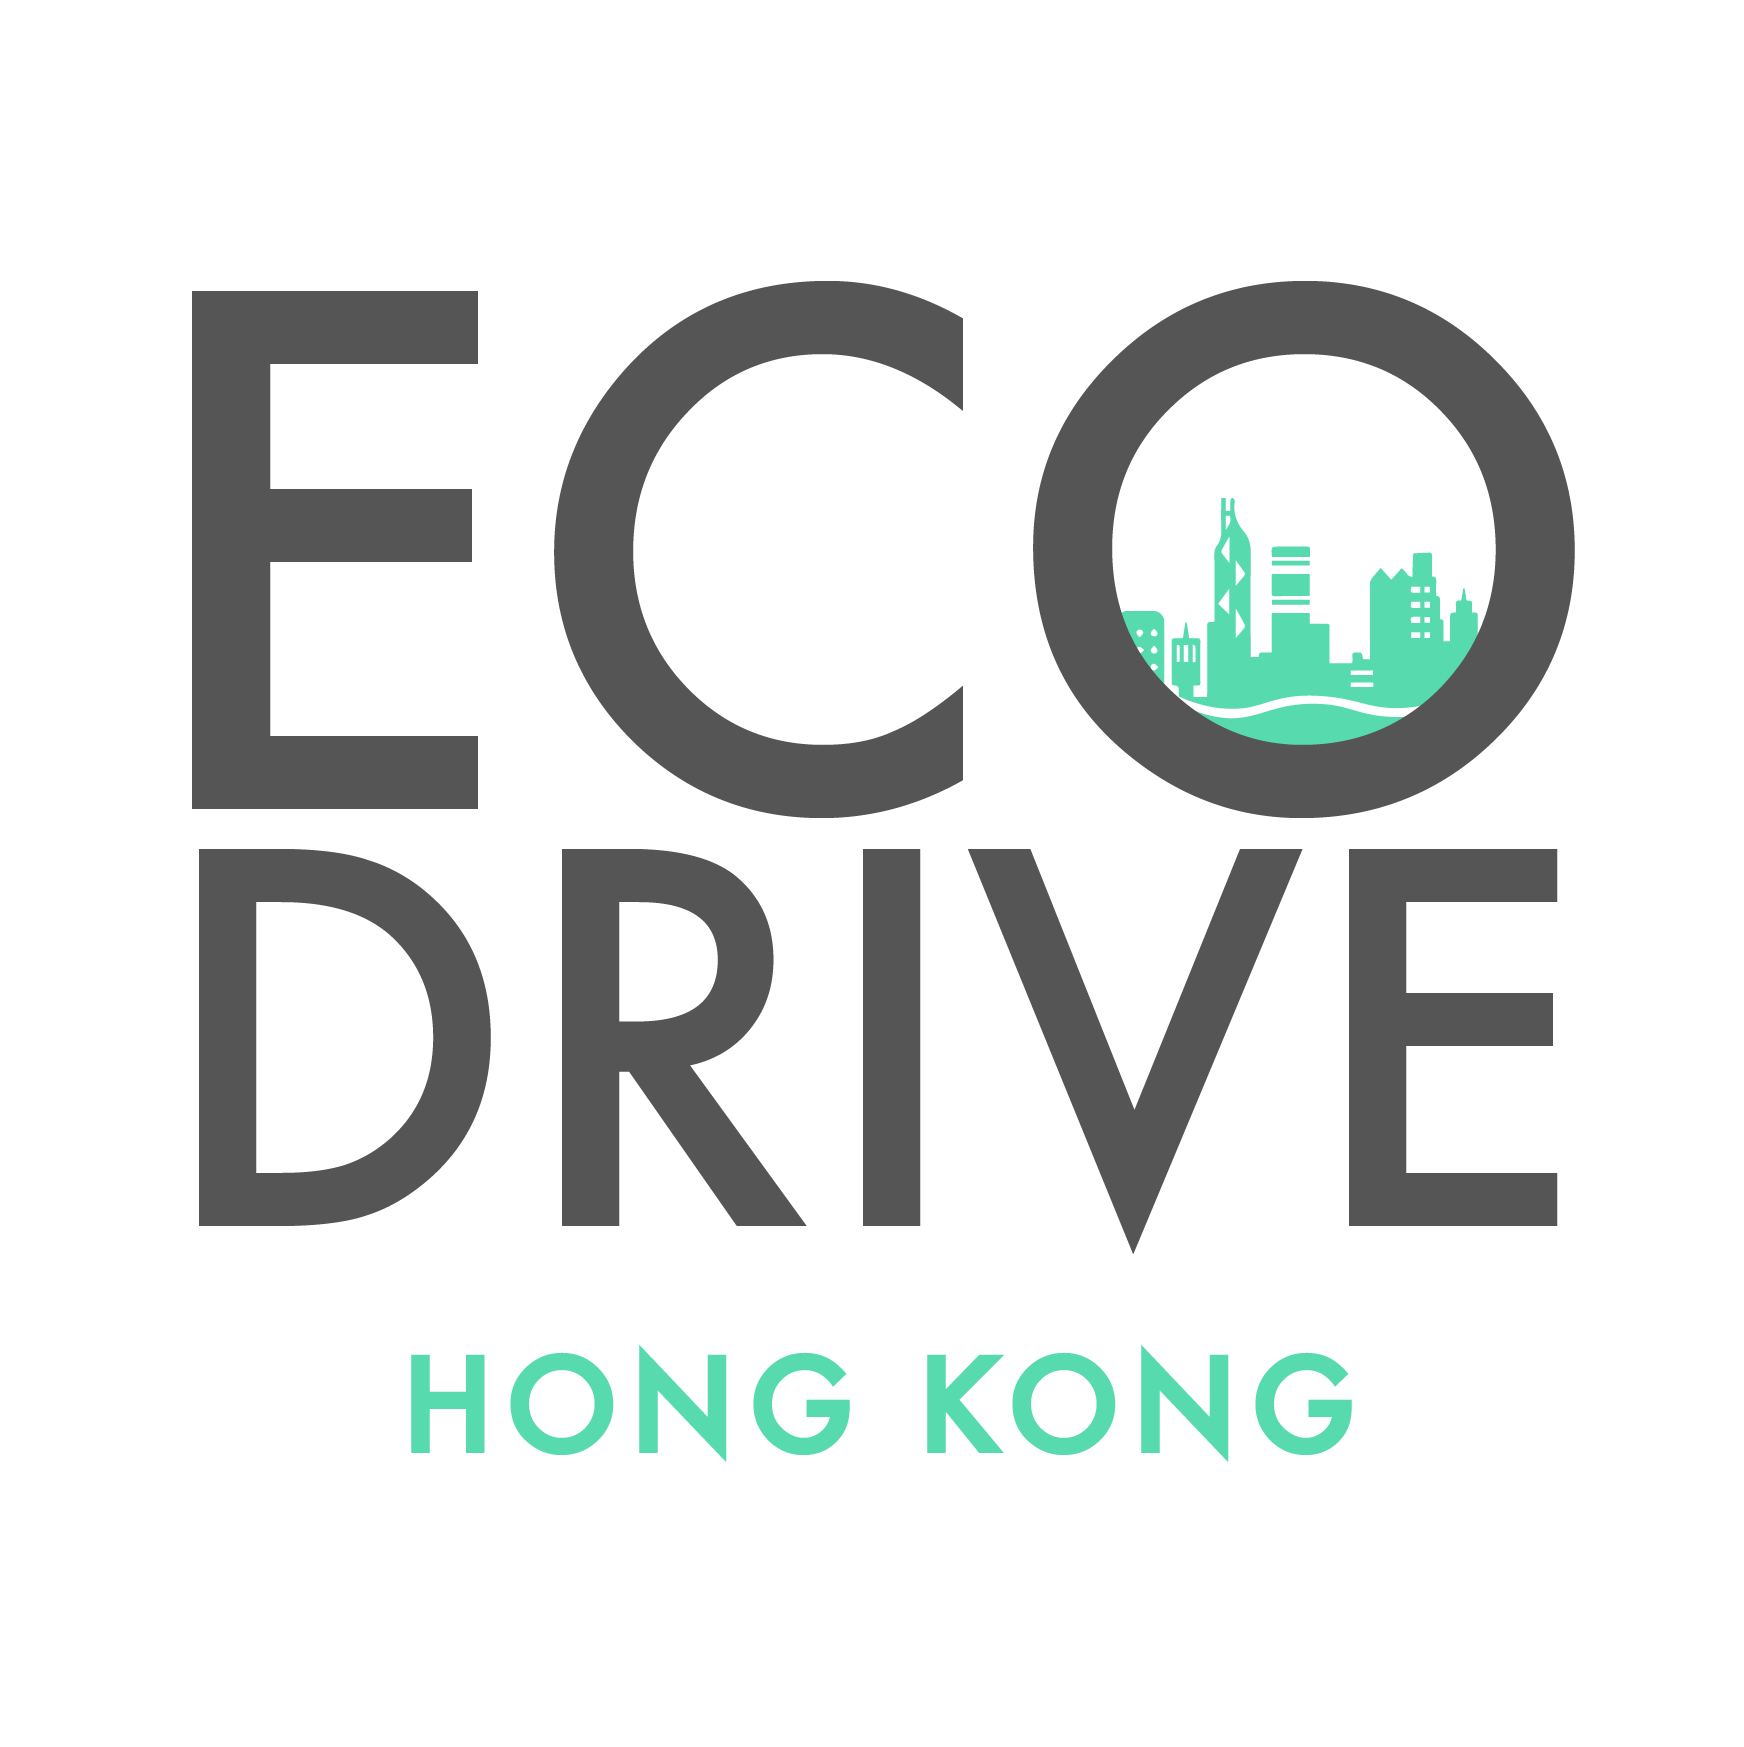 Eco drive logo transparent